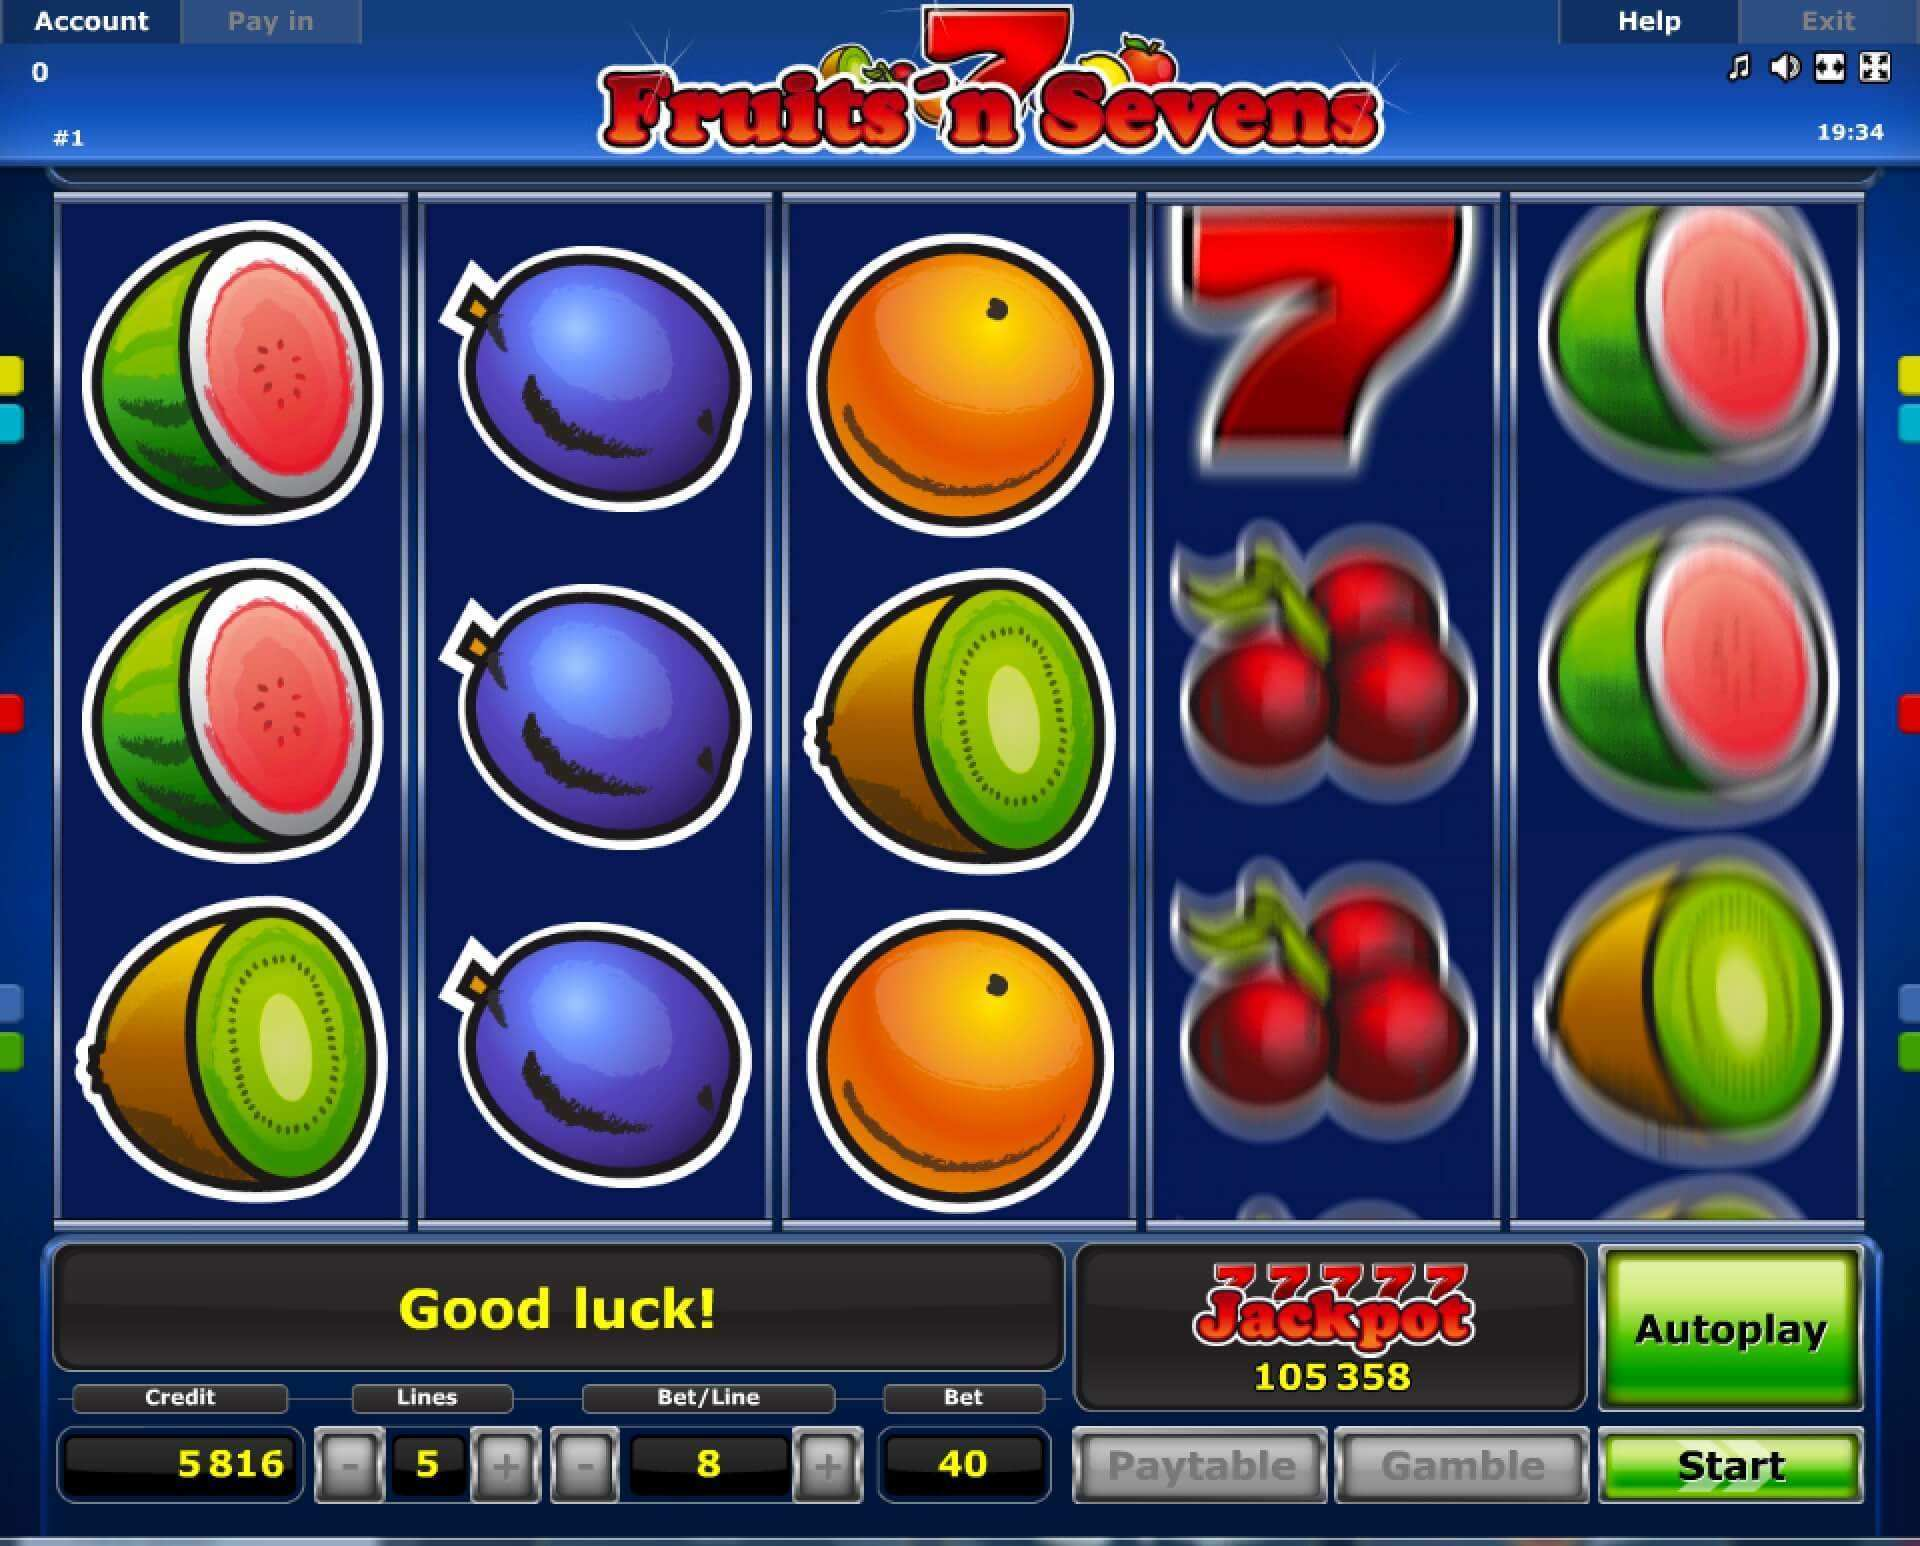 Jackpot city casino download 14